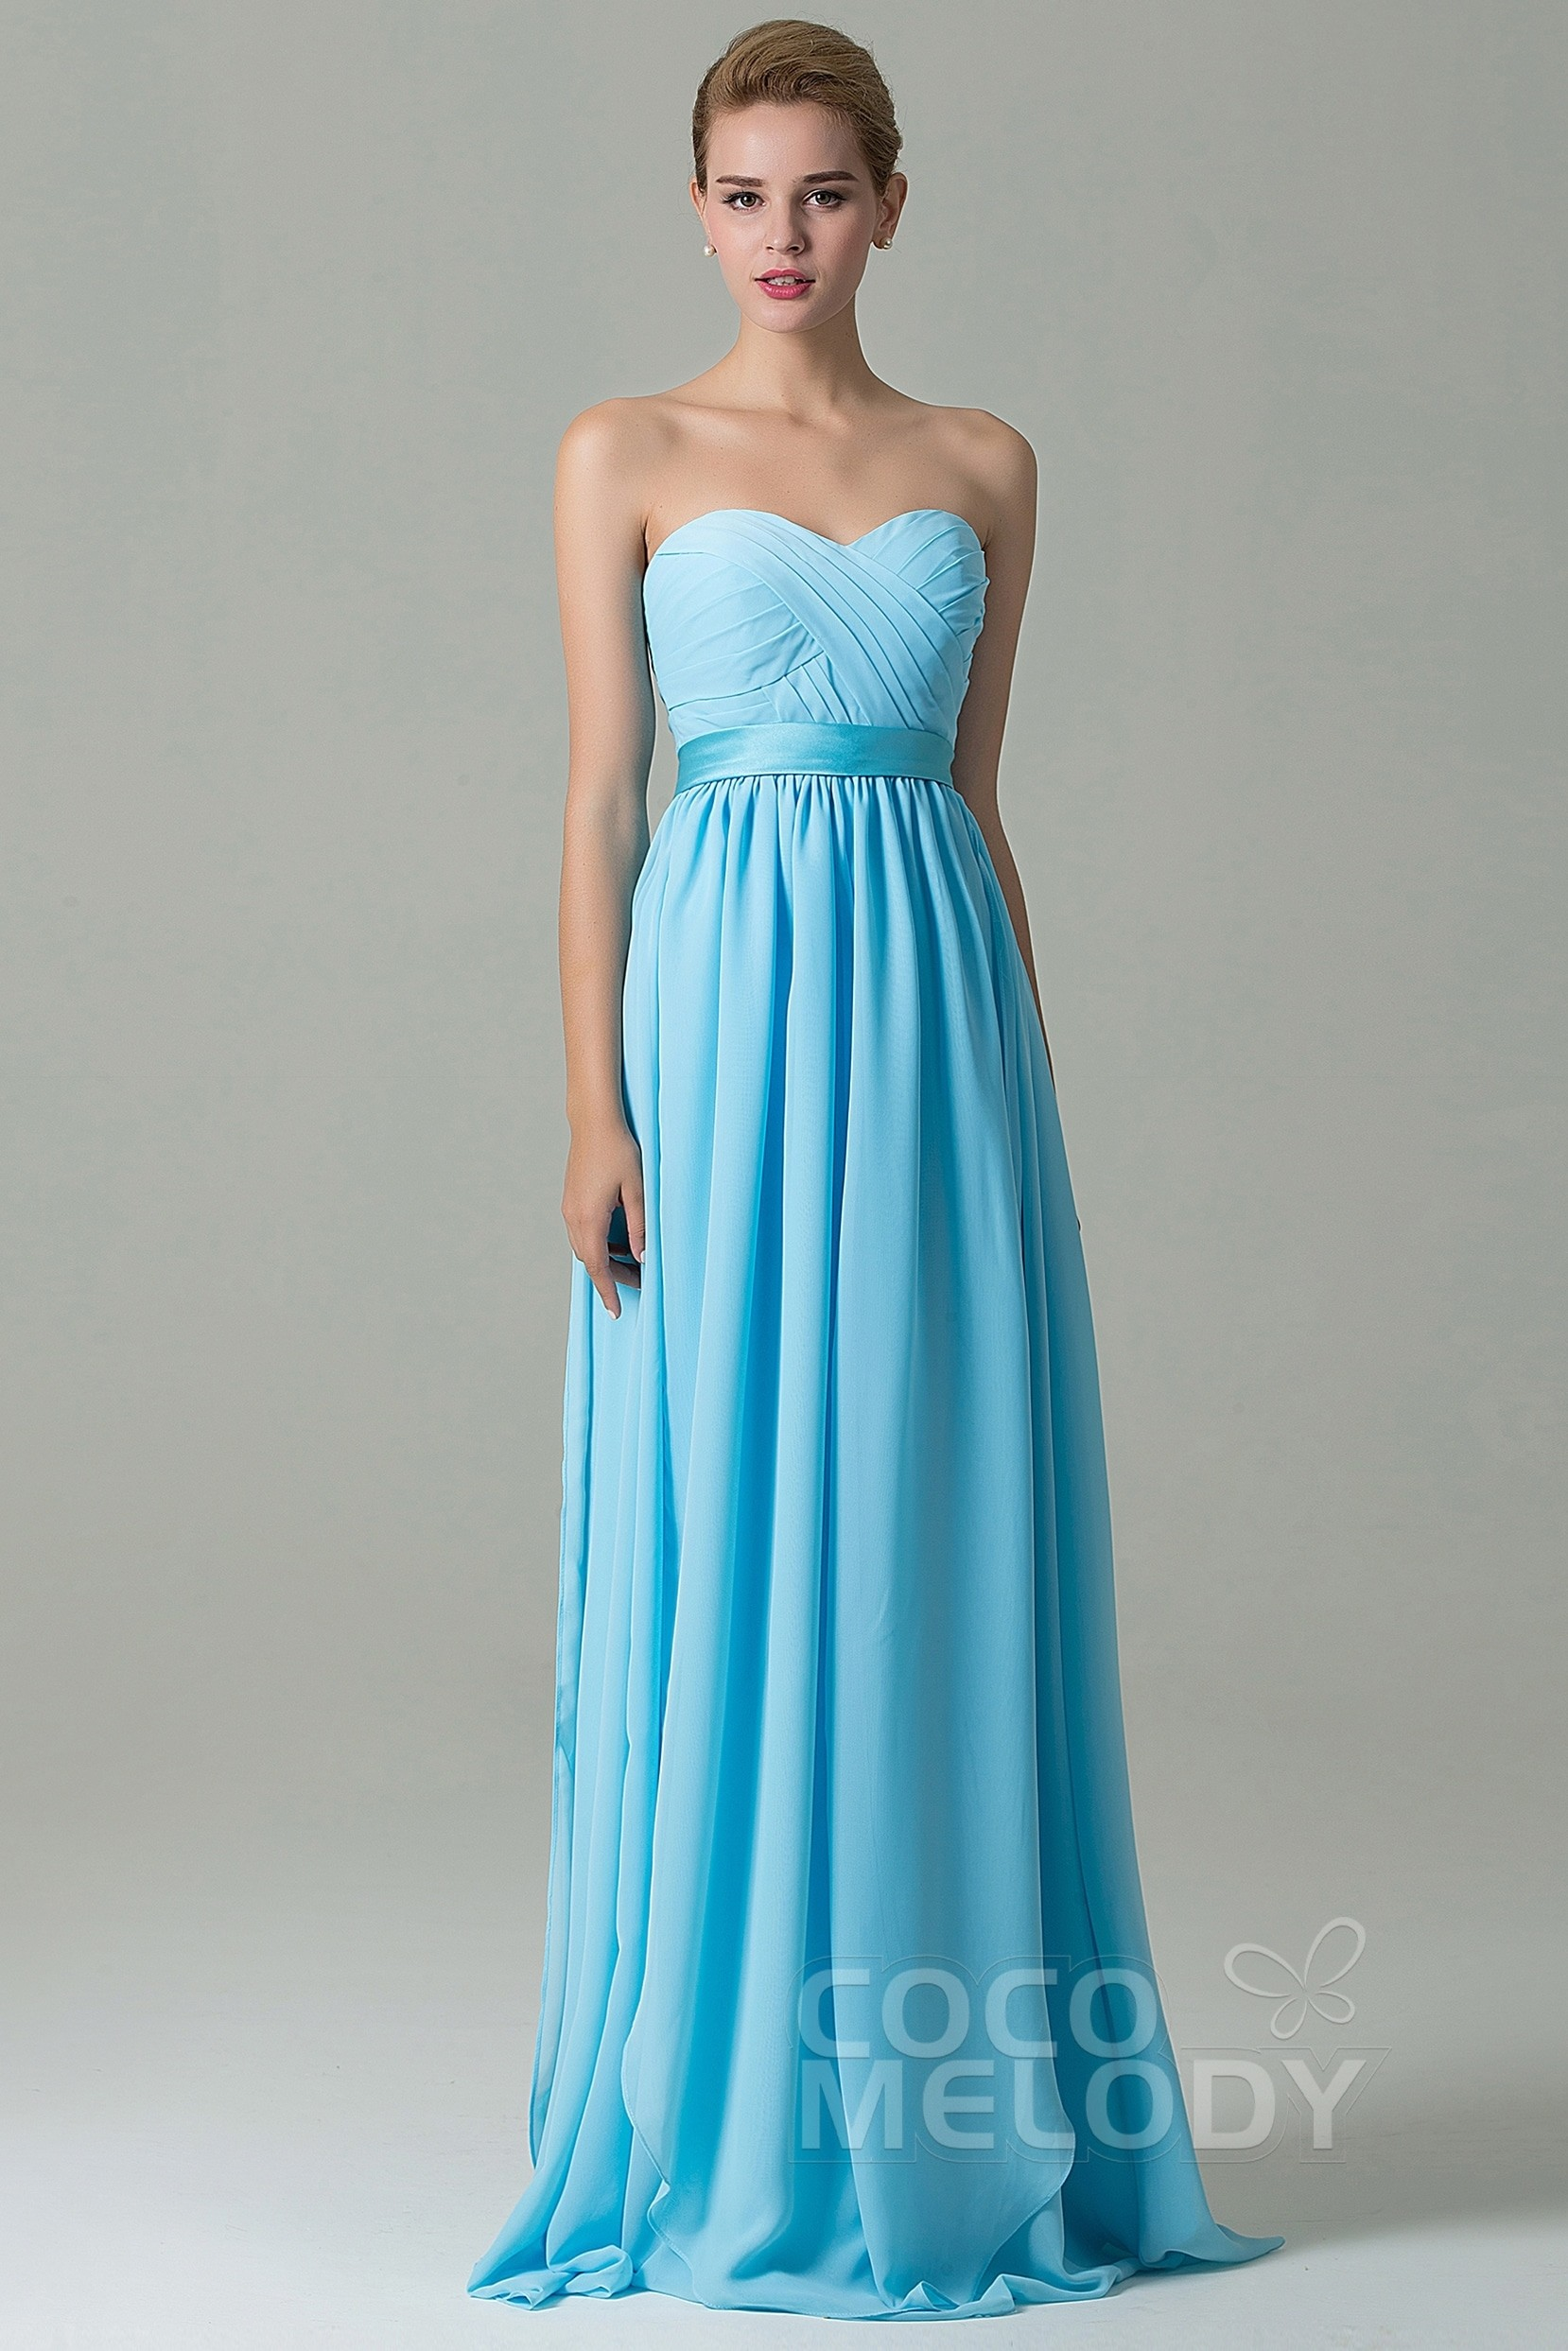 5a77a7b3a97 Sheath Floor Length Chiffon Bridesmaid Dress COZF140A1